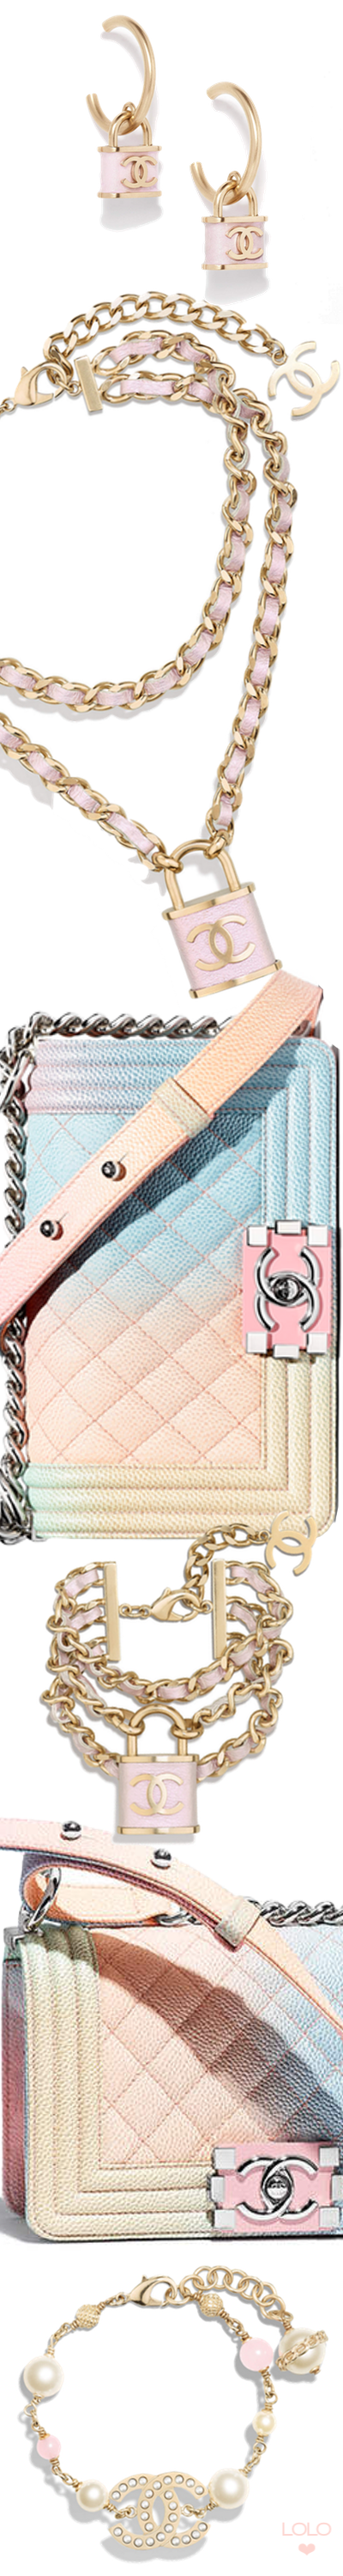 CHANEL SPRING/SUMMER 2018 PRE-COLLECTION ACCESSORIES